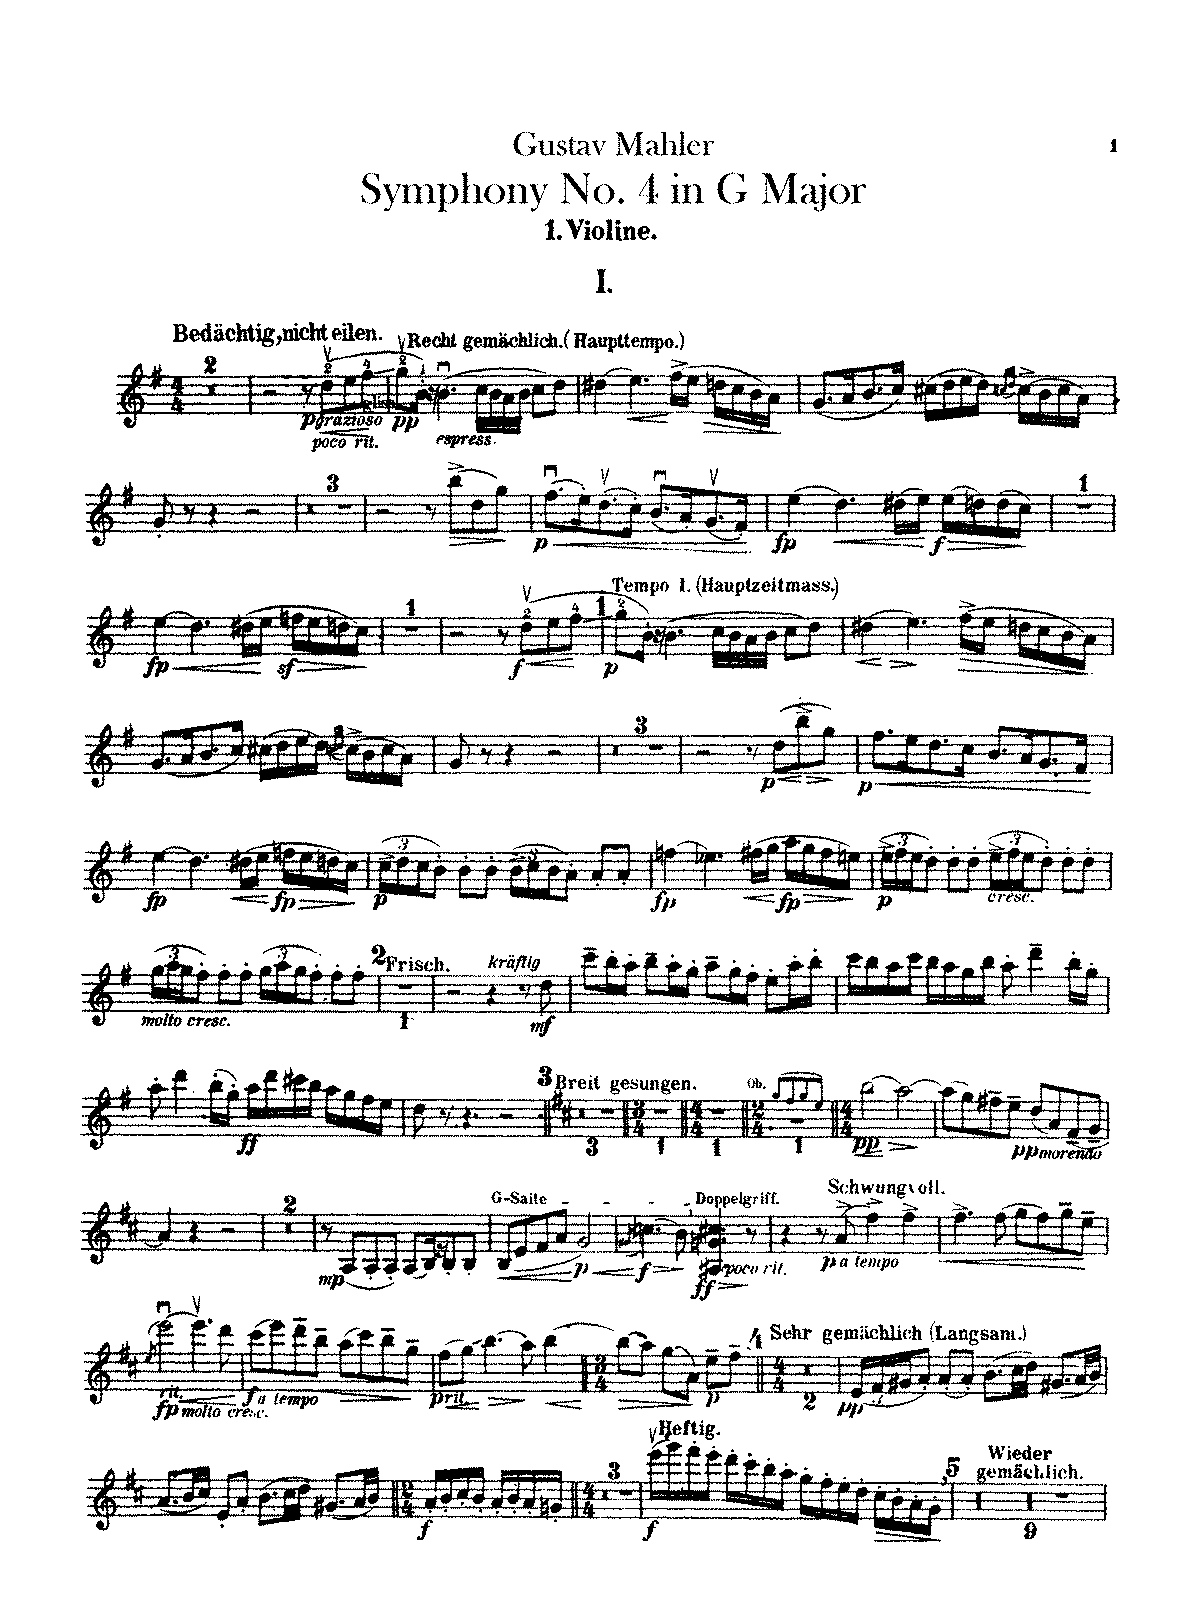 PMLP58739-Mahler-Sym4.Violin1-liens-video.pdf